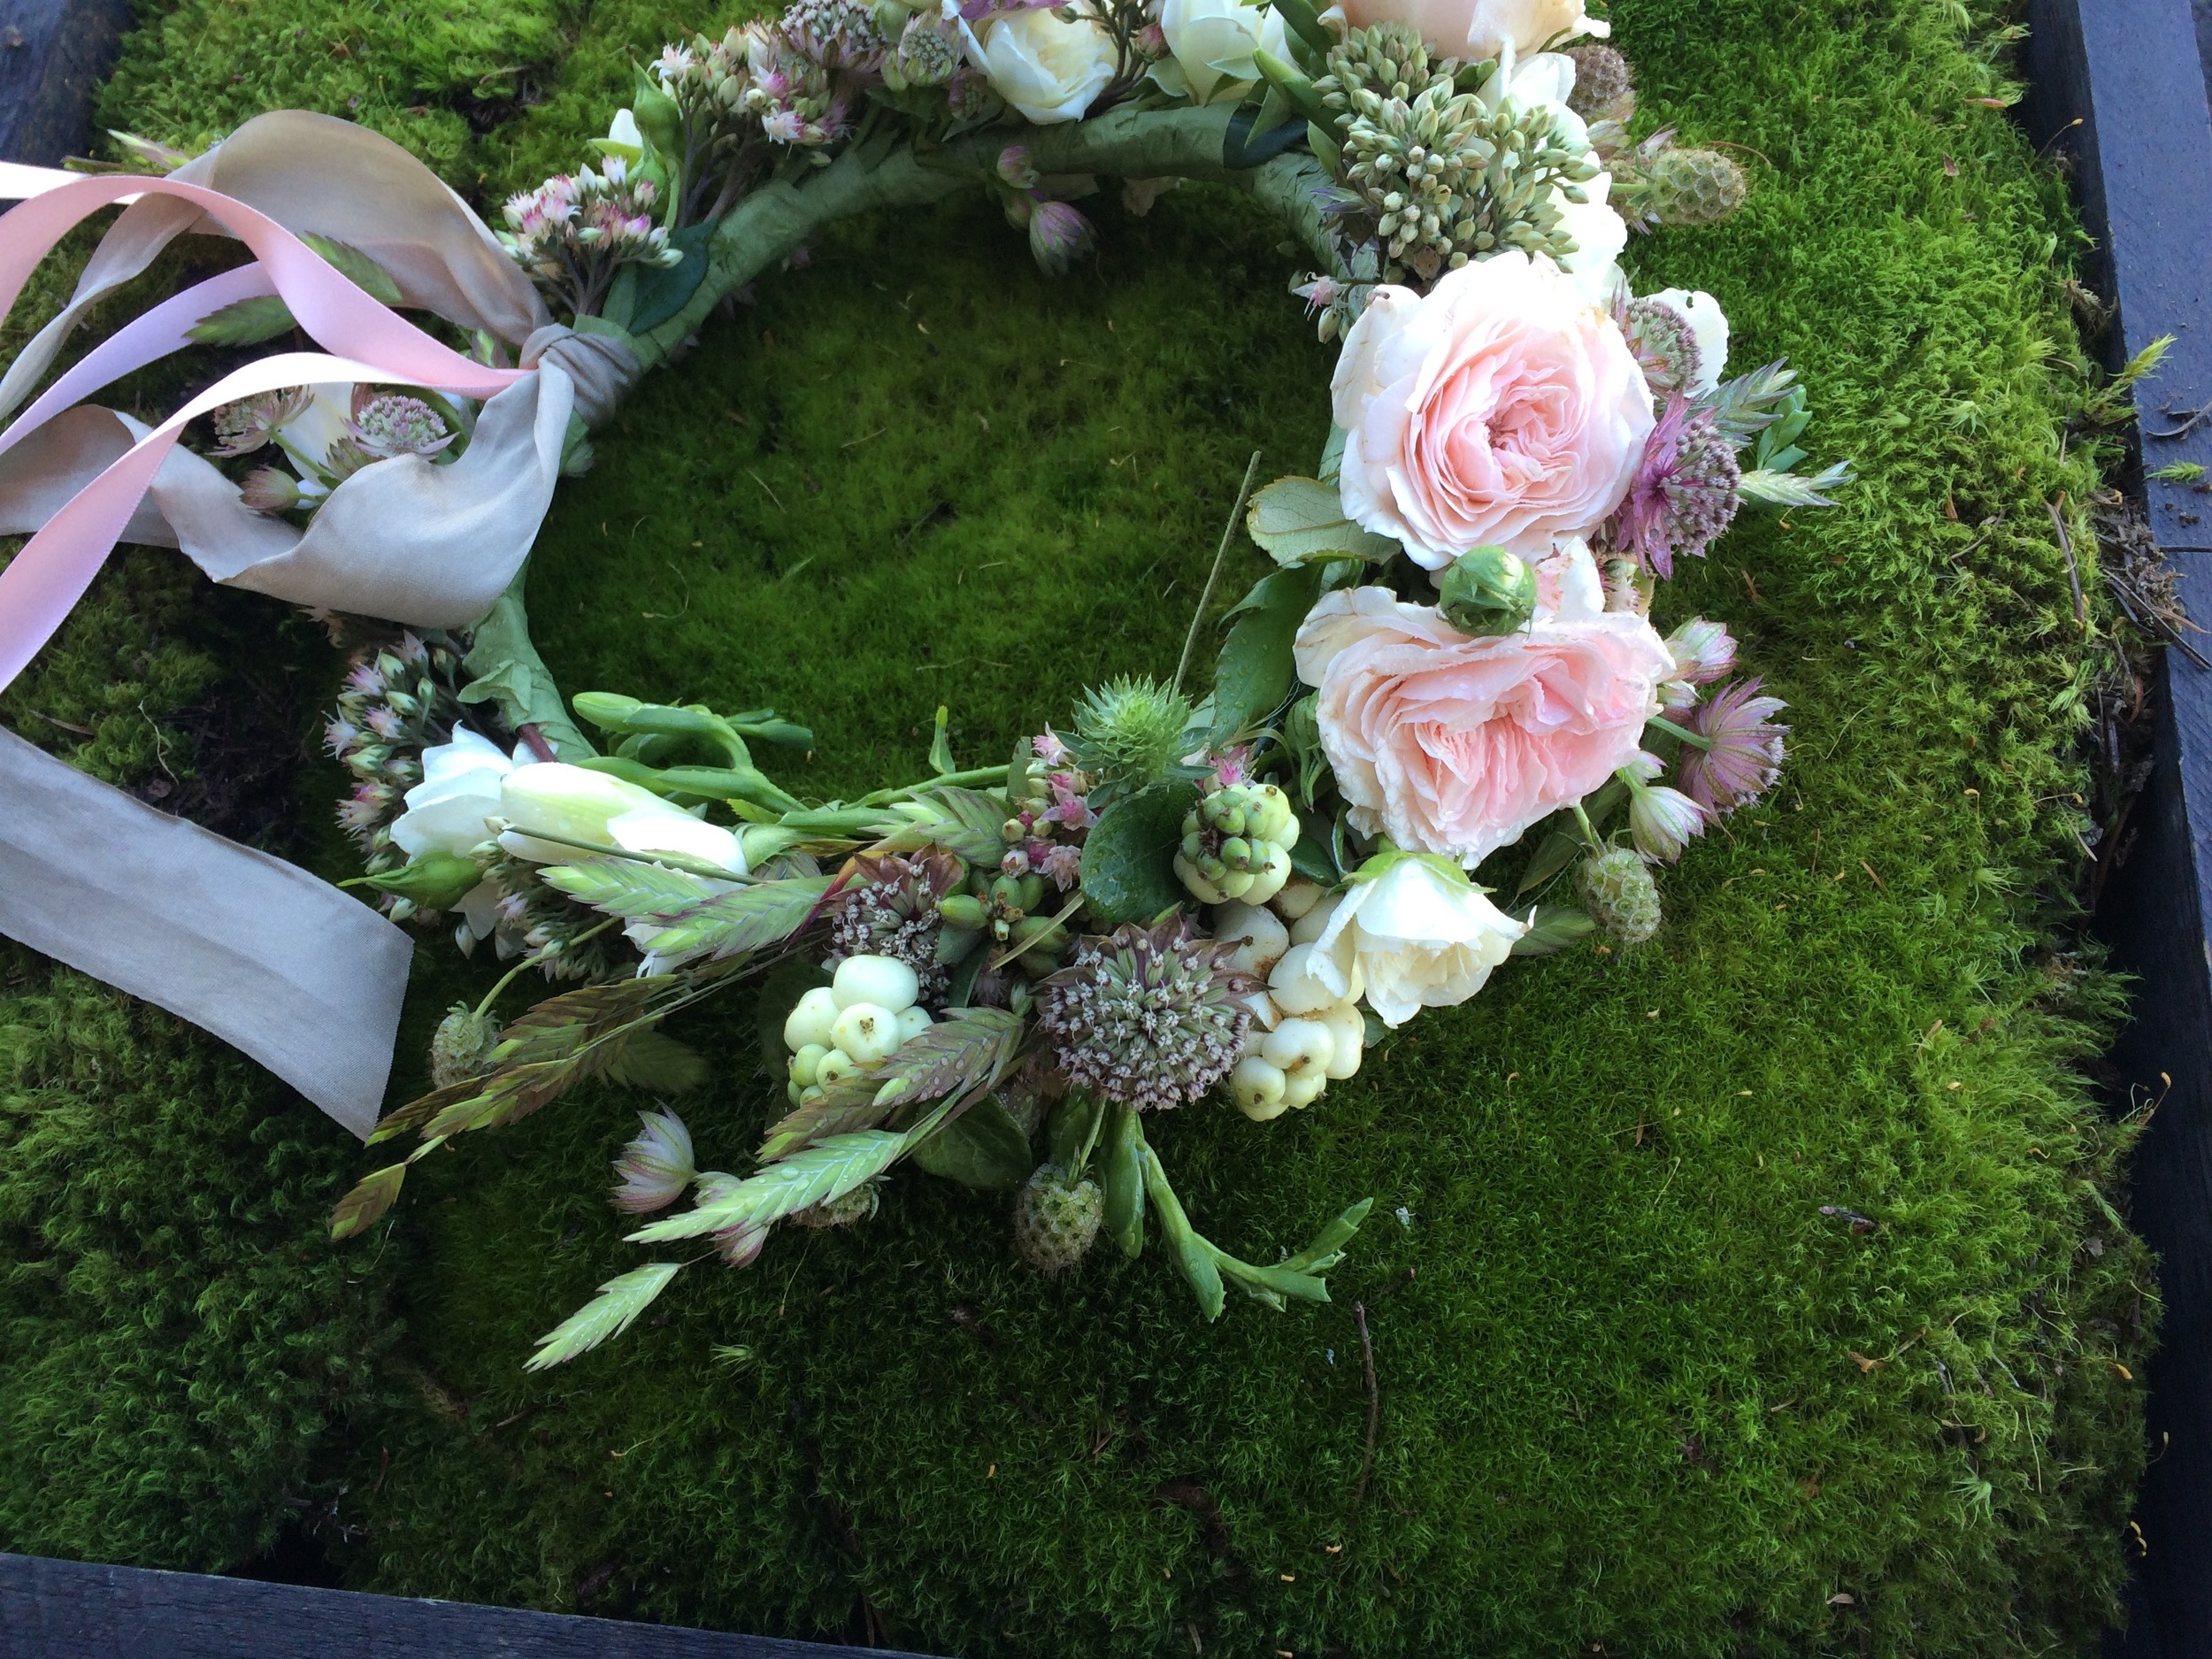 Heirloom Floral Design - Bend Oregon - Wedding - flowers to wear-headwreath.jpg